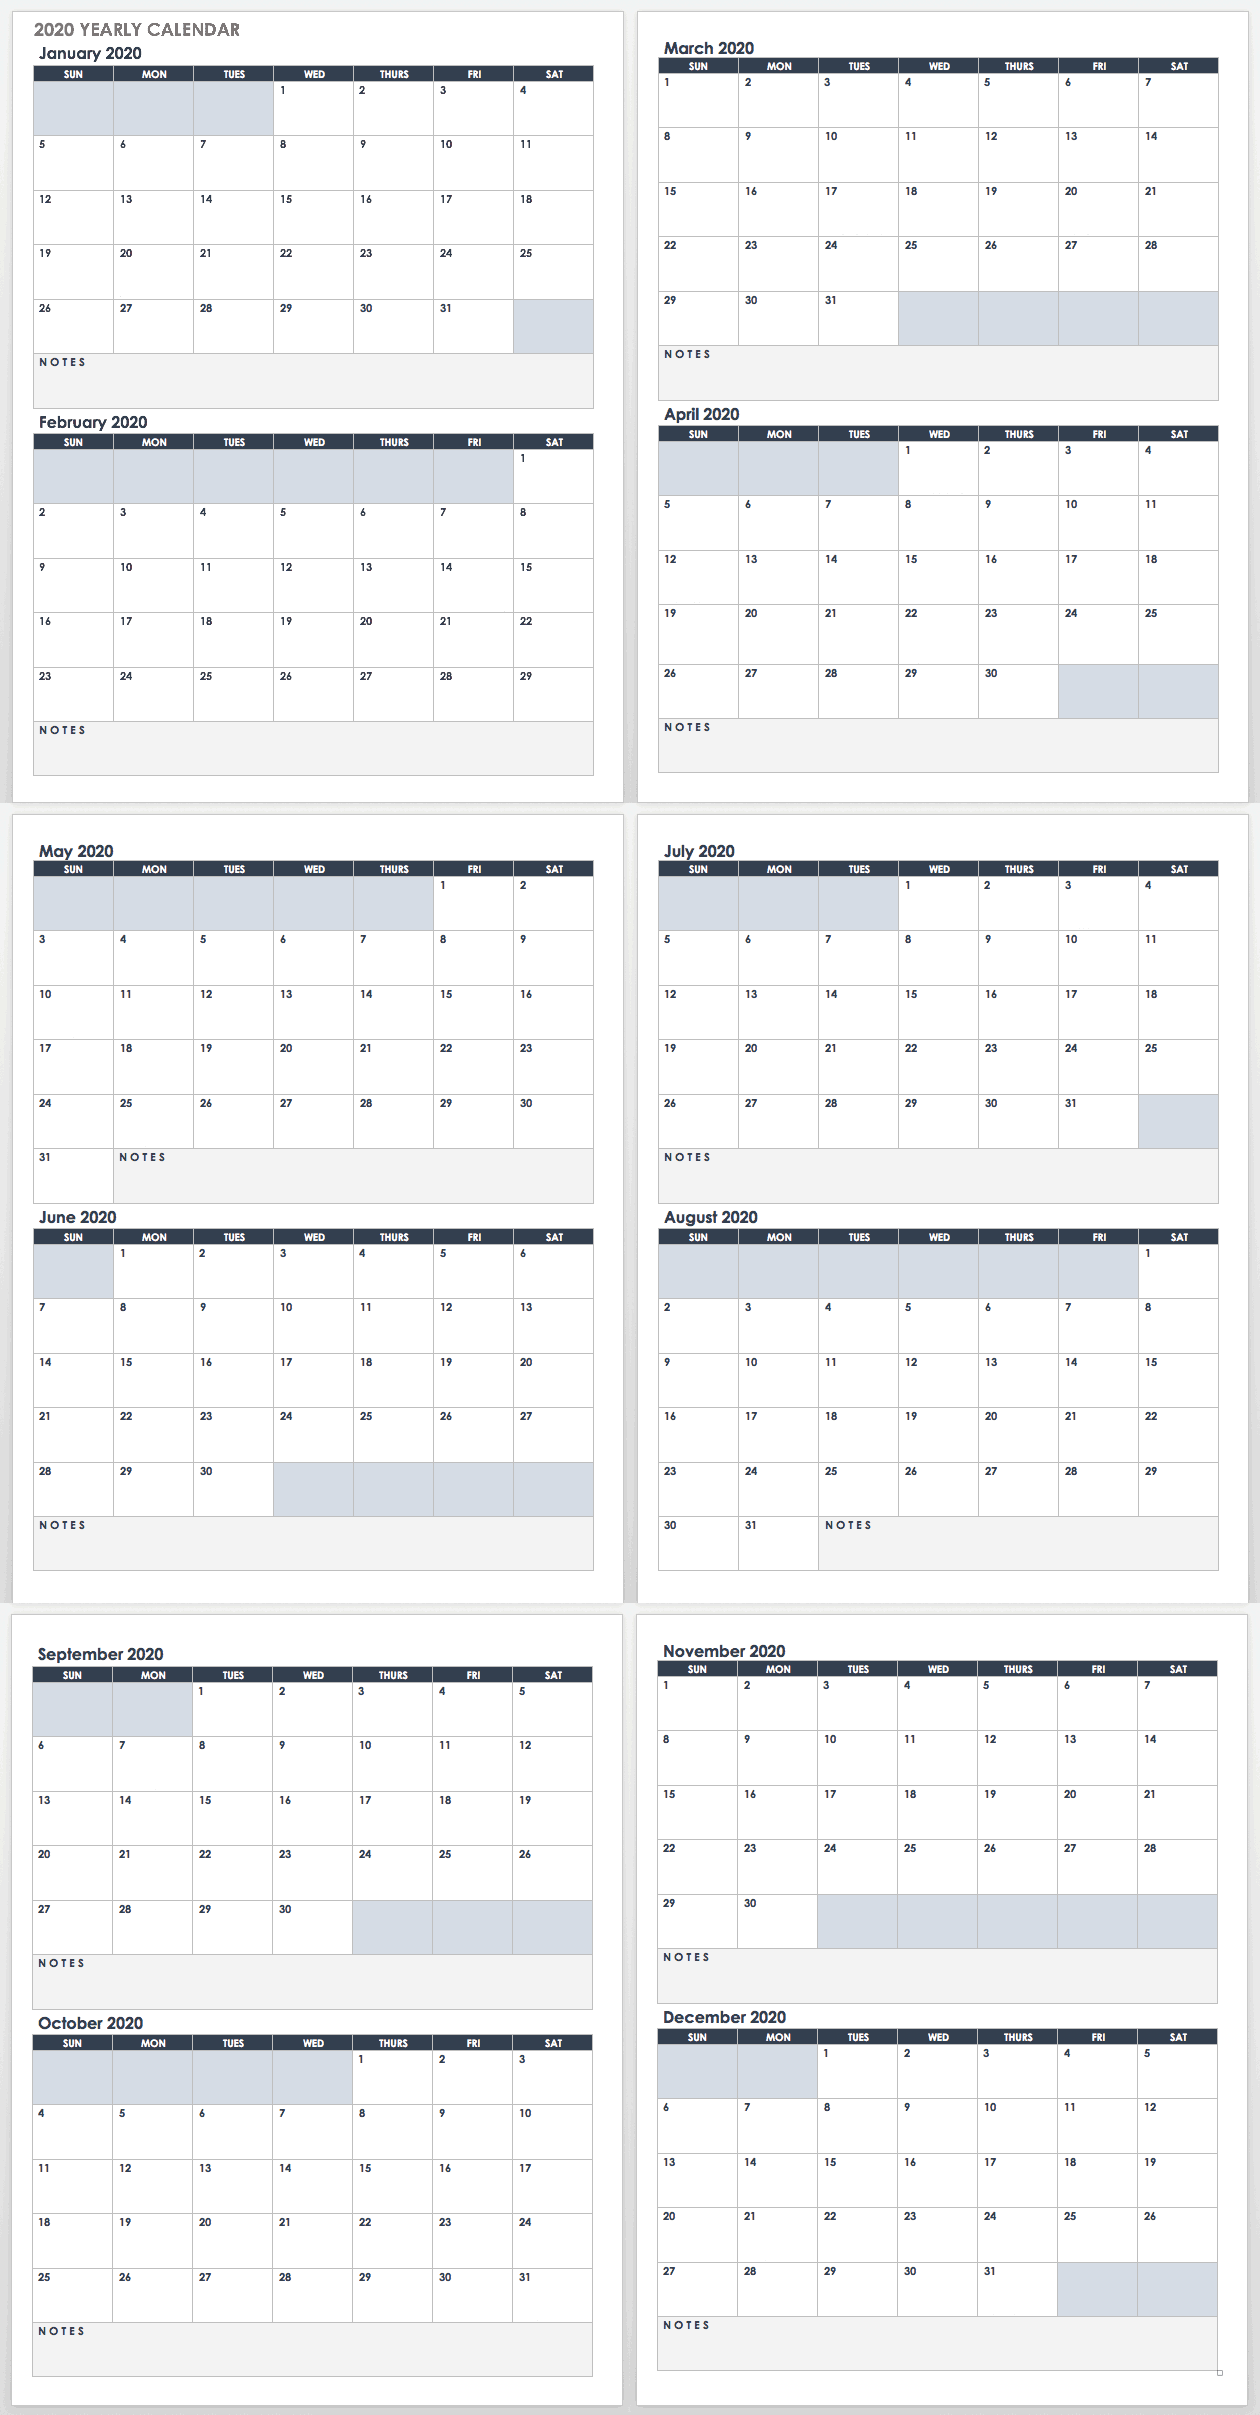 2020 Yearly Calendar Template Google Landscape